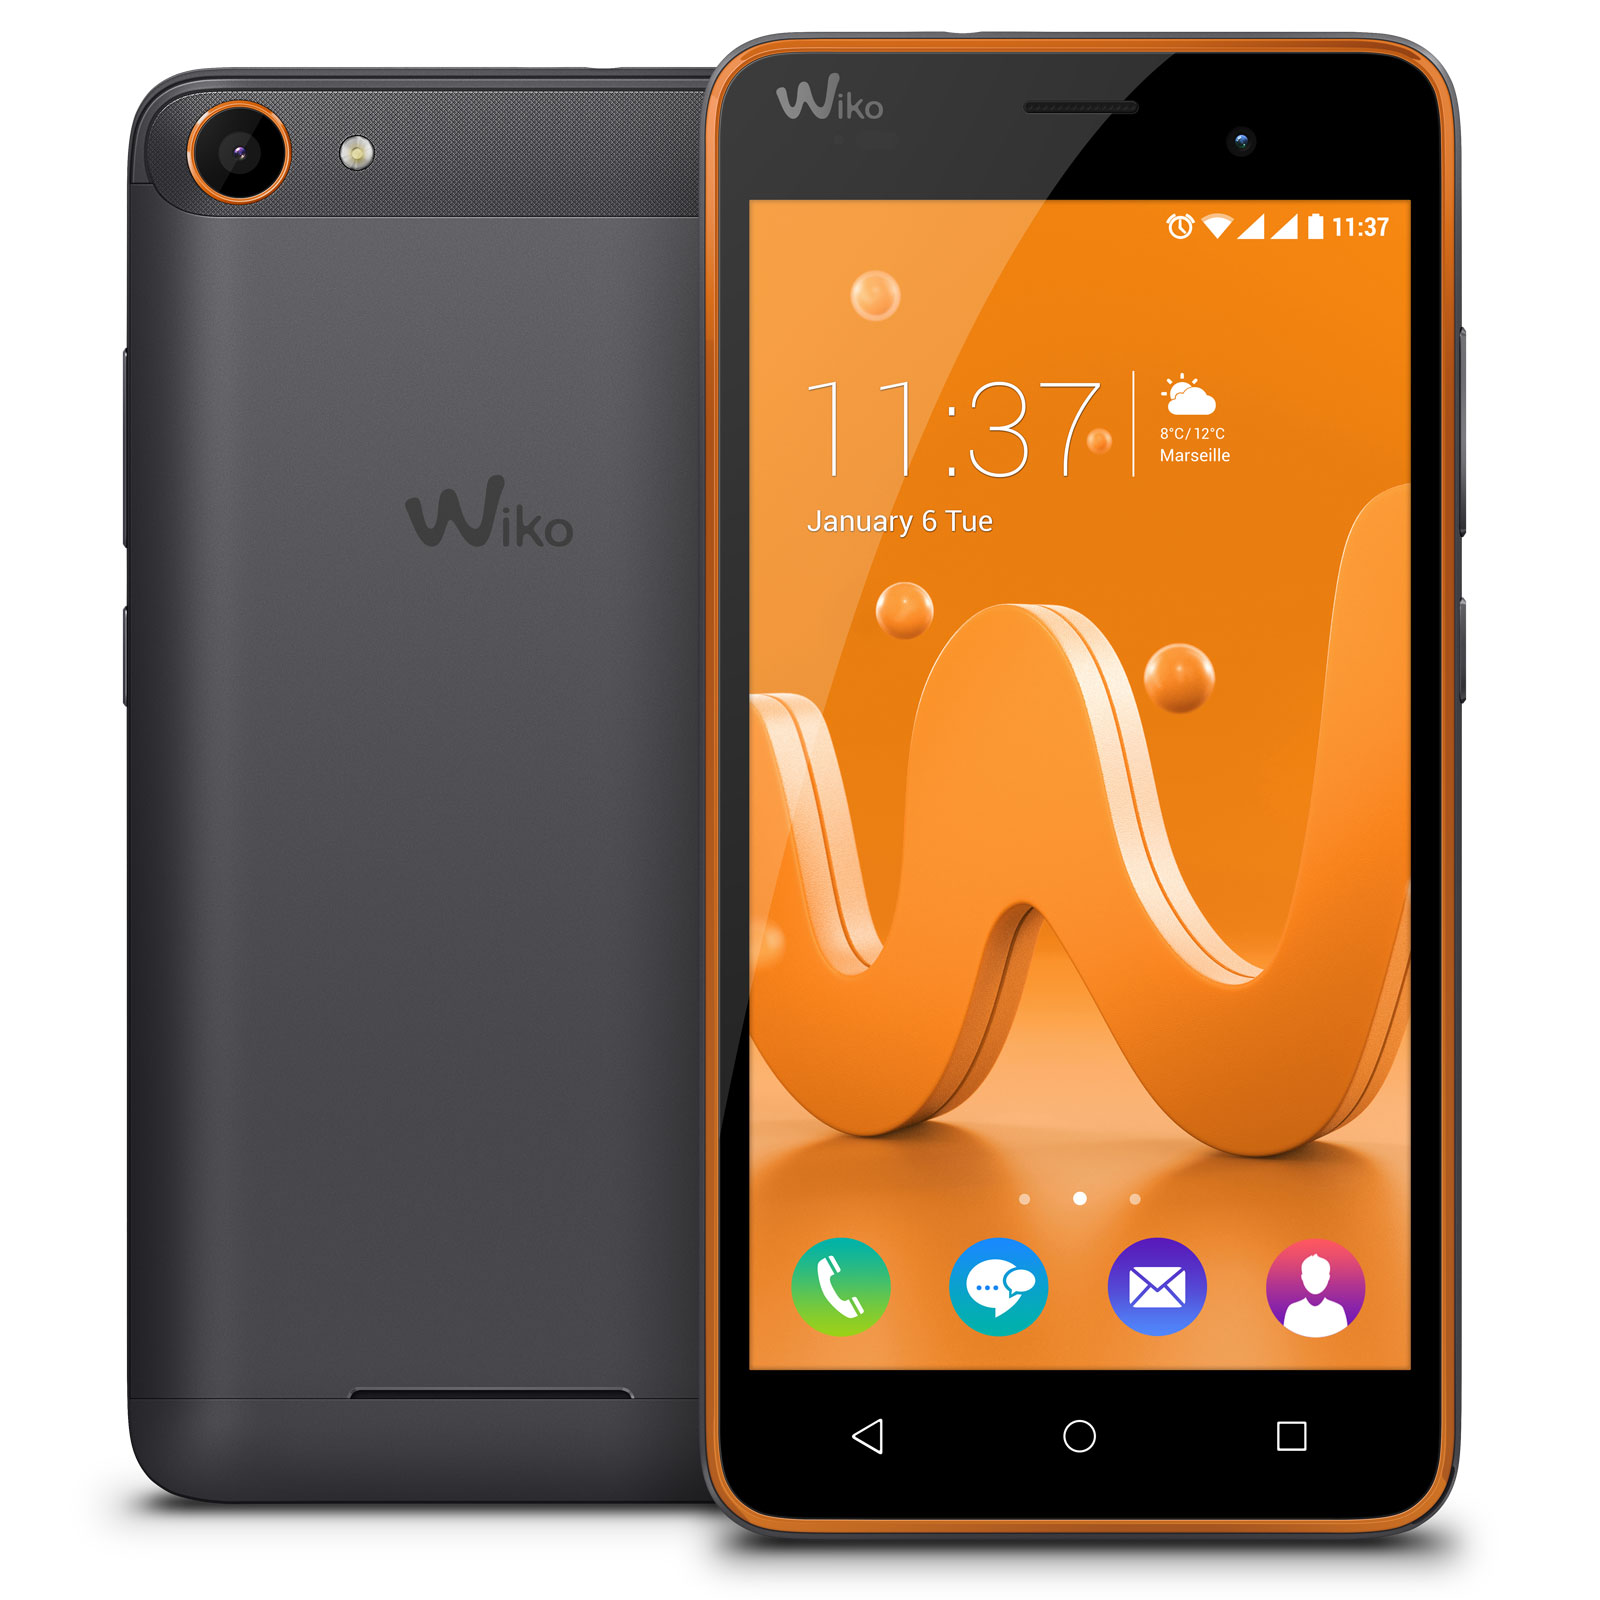 wiko jerry gris orange mobile smartphone wiko sur. Black Bedroom Furniture Sets. Home Design Ideas